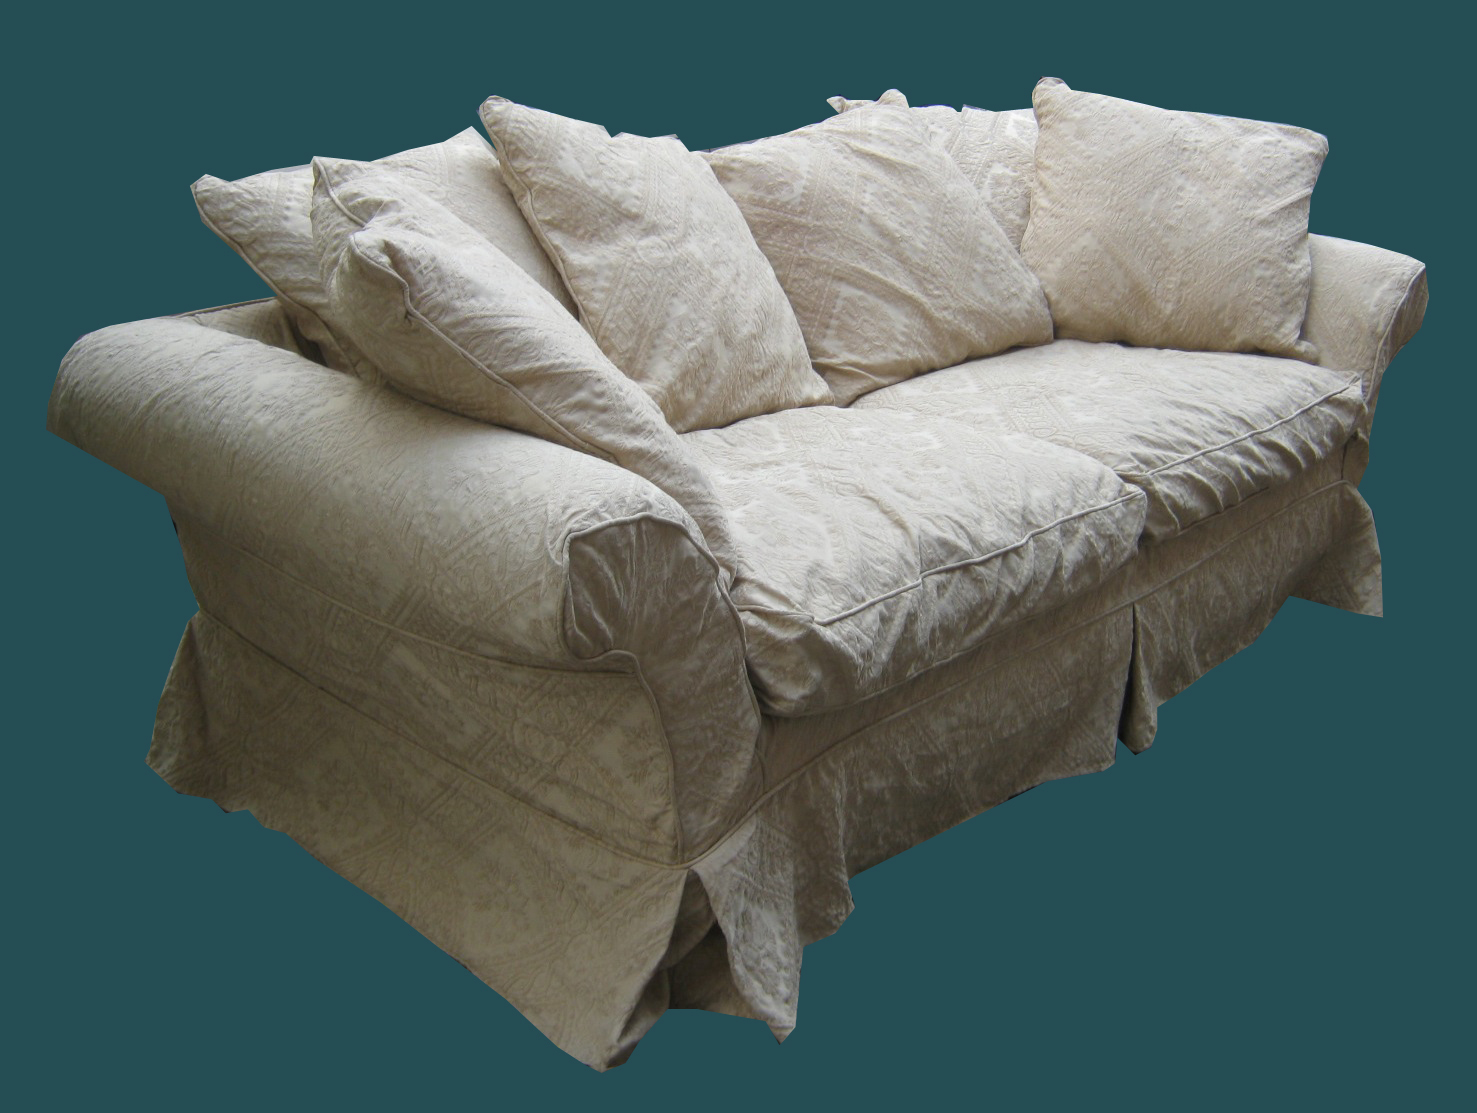 uhuru furniture collectibles shabby chic slipcovered sleeper sofa sold. Black Bedroom Furniture Sets. Home Design Ideas